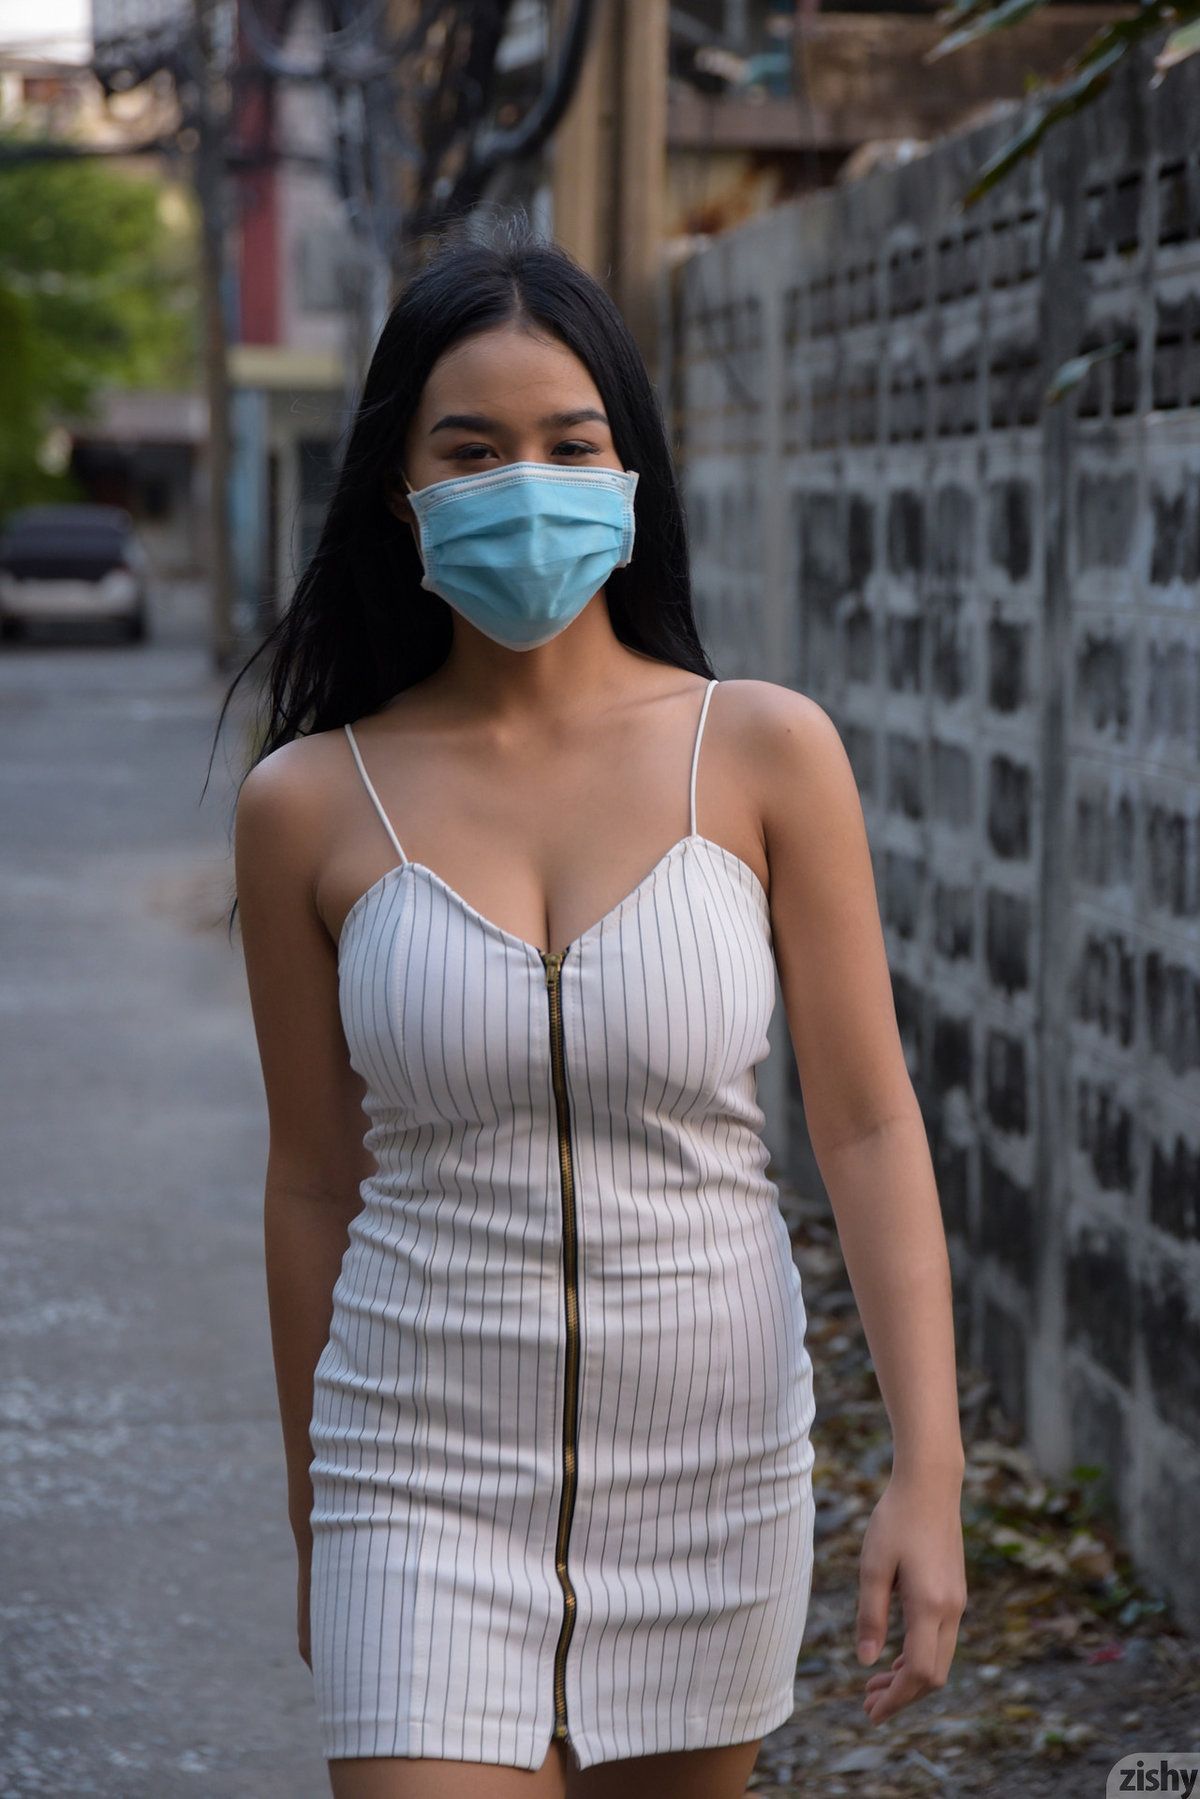 dress mask coronavirus zishy braless tits or gtfo